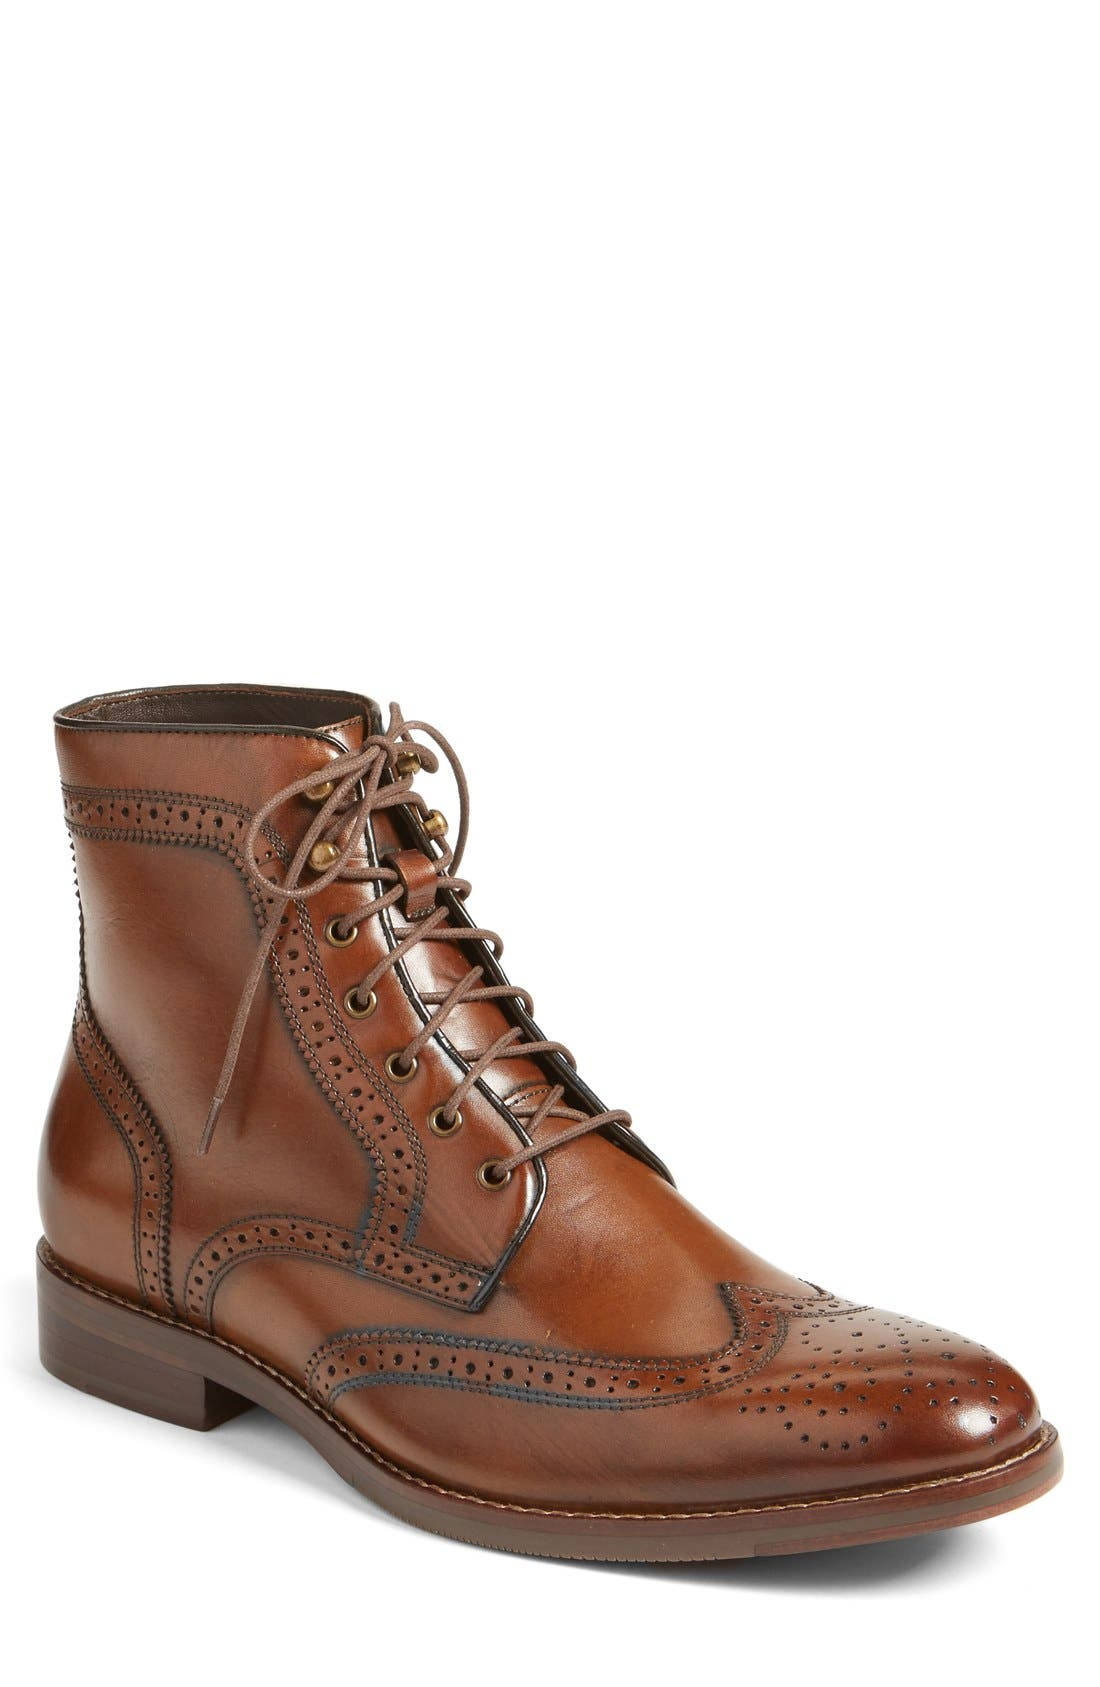 Alternate Image 1 Selected - J&M 1850 Meritt Wingtip Boot (Men) (Nordstrom Exclusive)